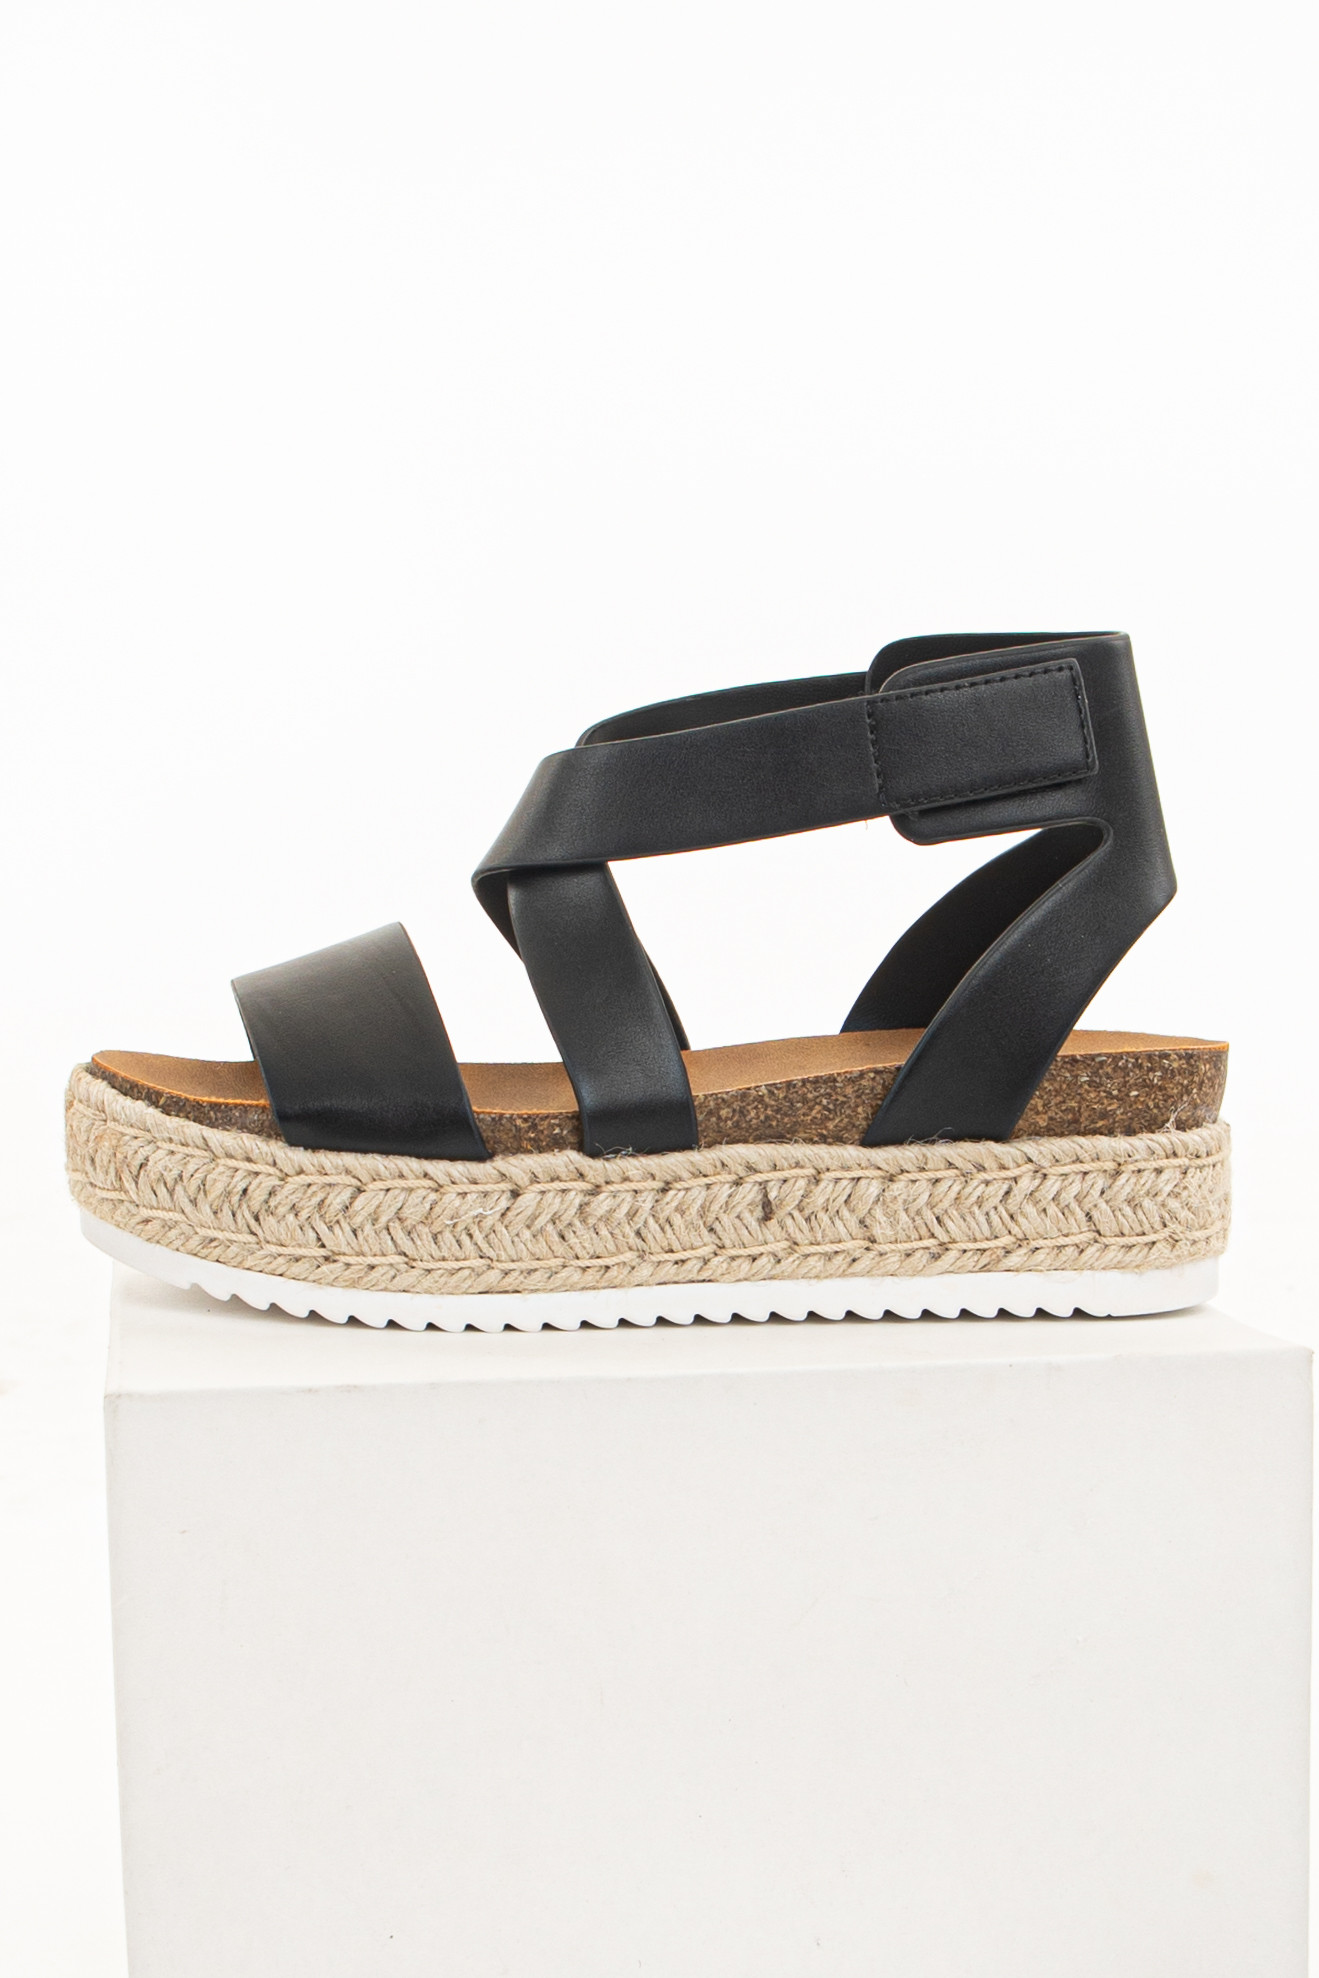 Black Faux Leather Strappy Velcro Espadrille Sandals